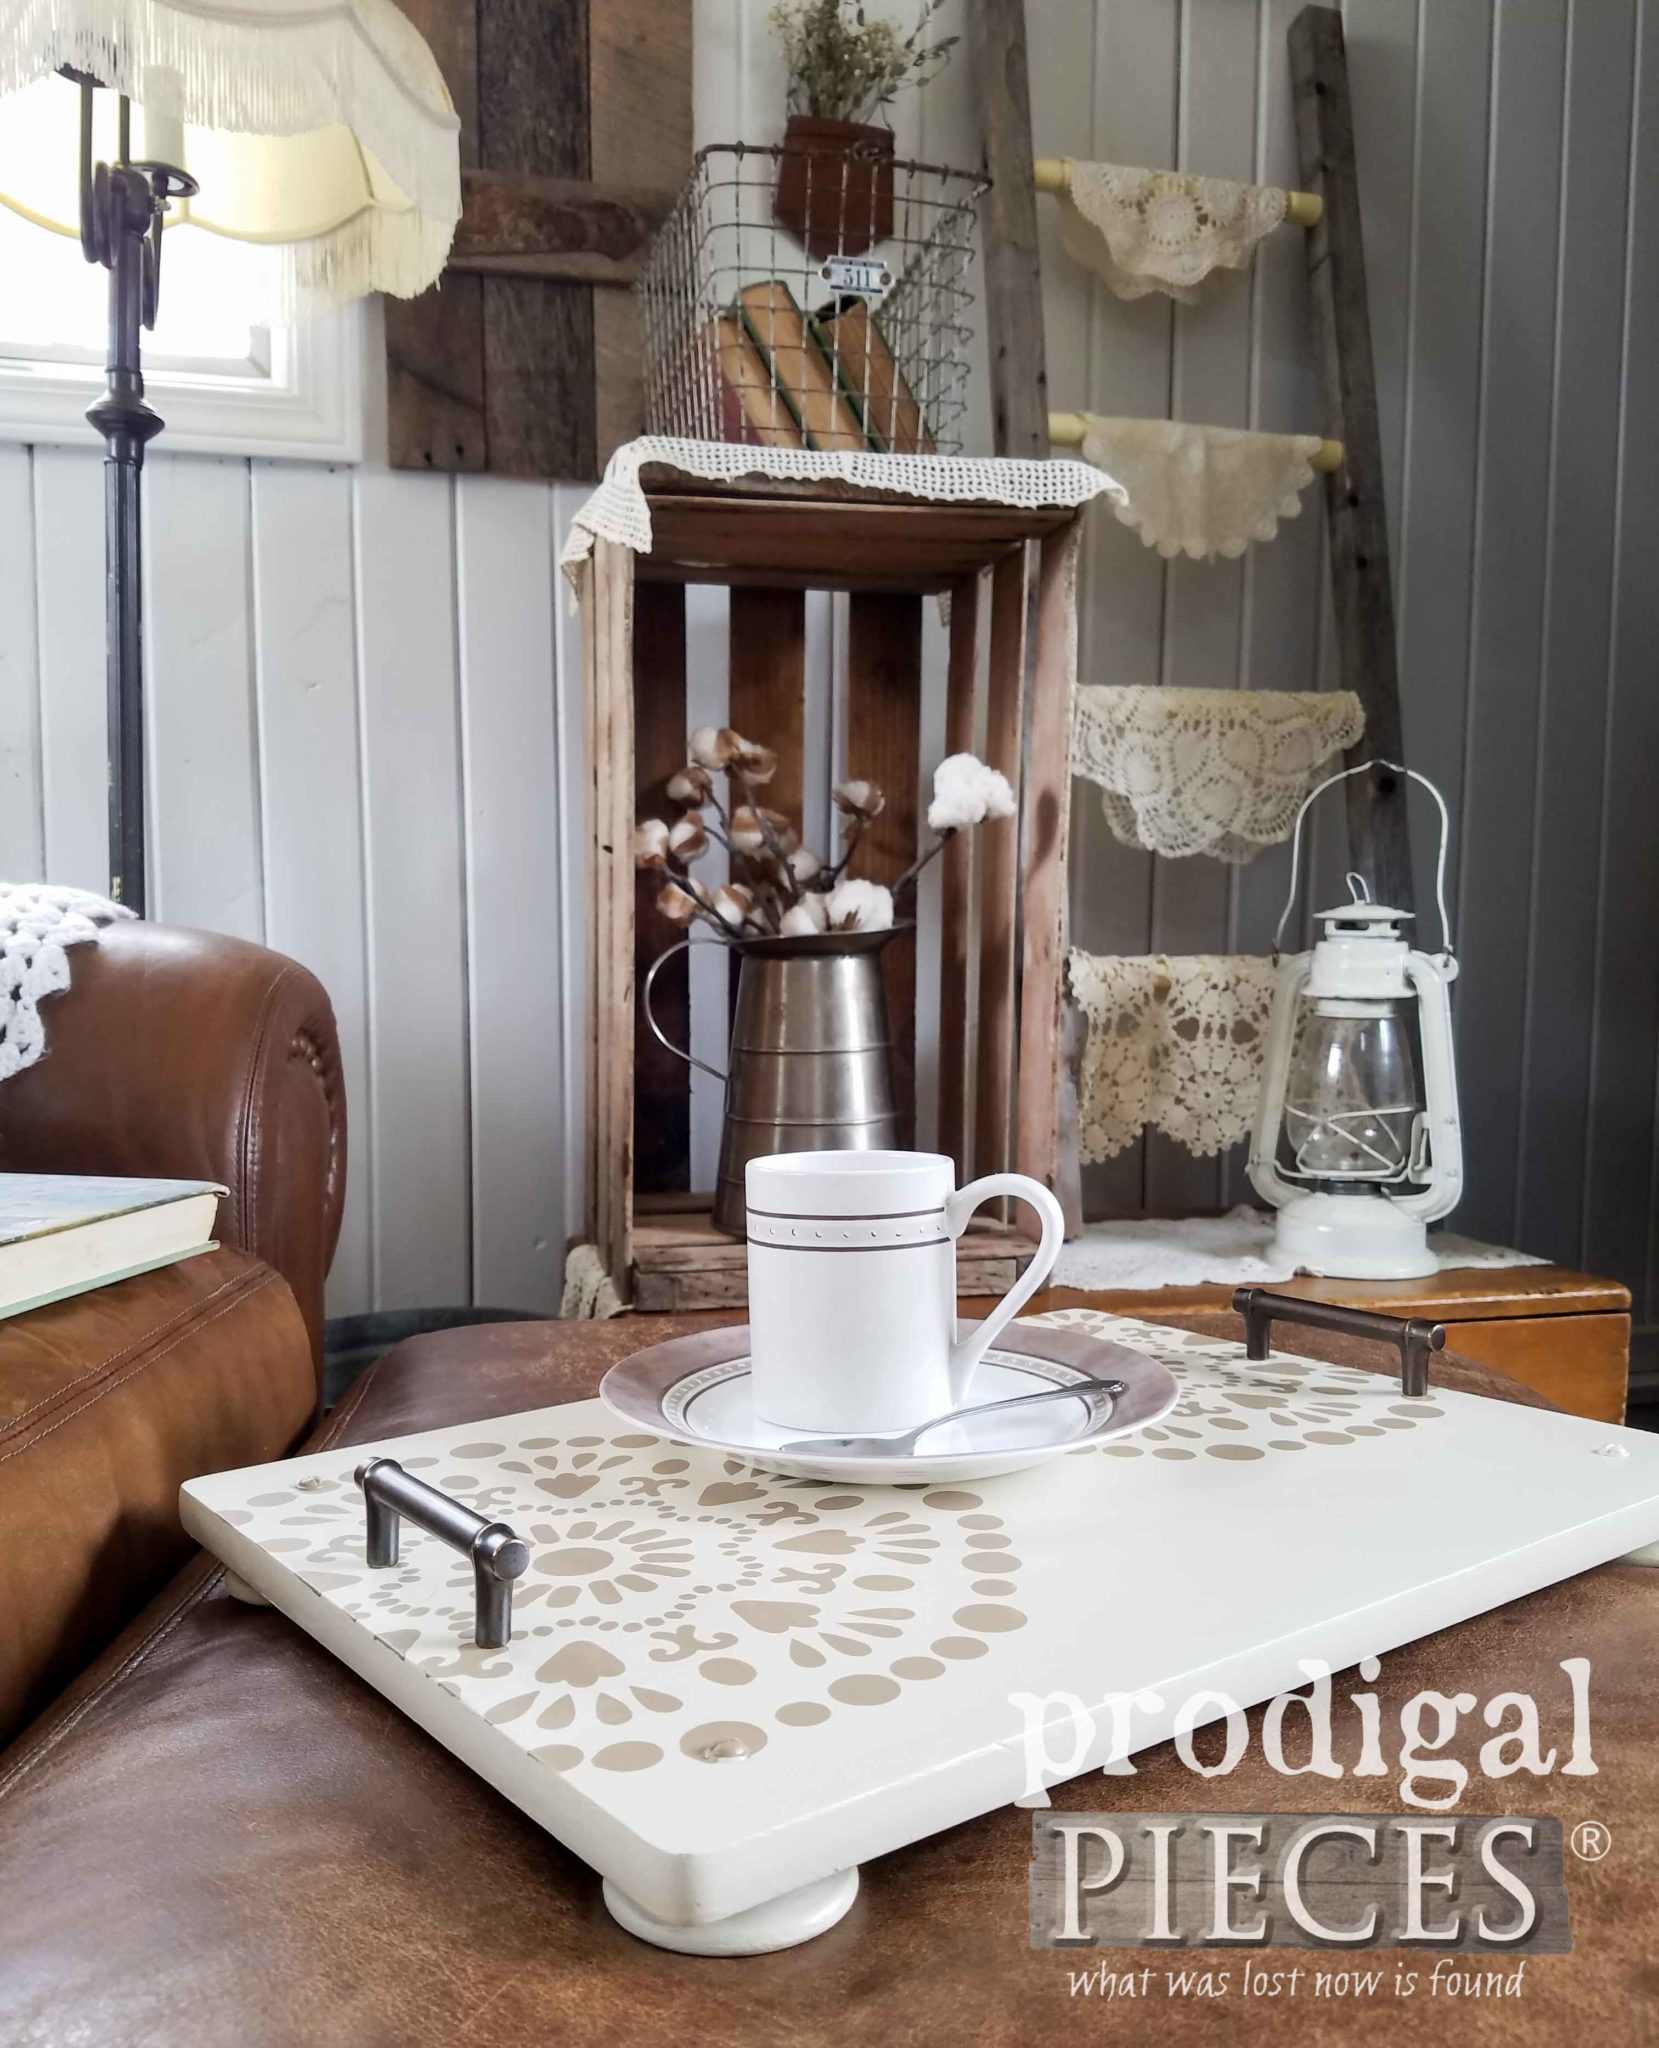 Farmhouse Footed Serving Tray Created by Larissa & Son of Prodigal Pieces | prodigalpieces.com